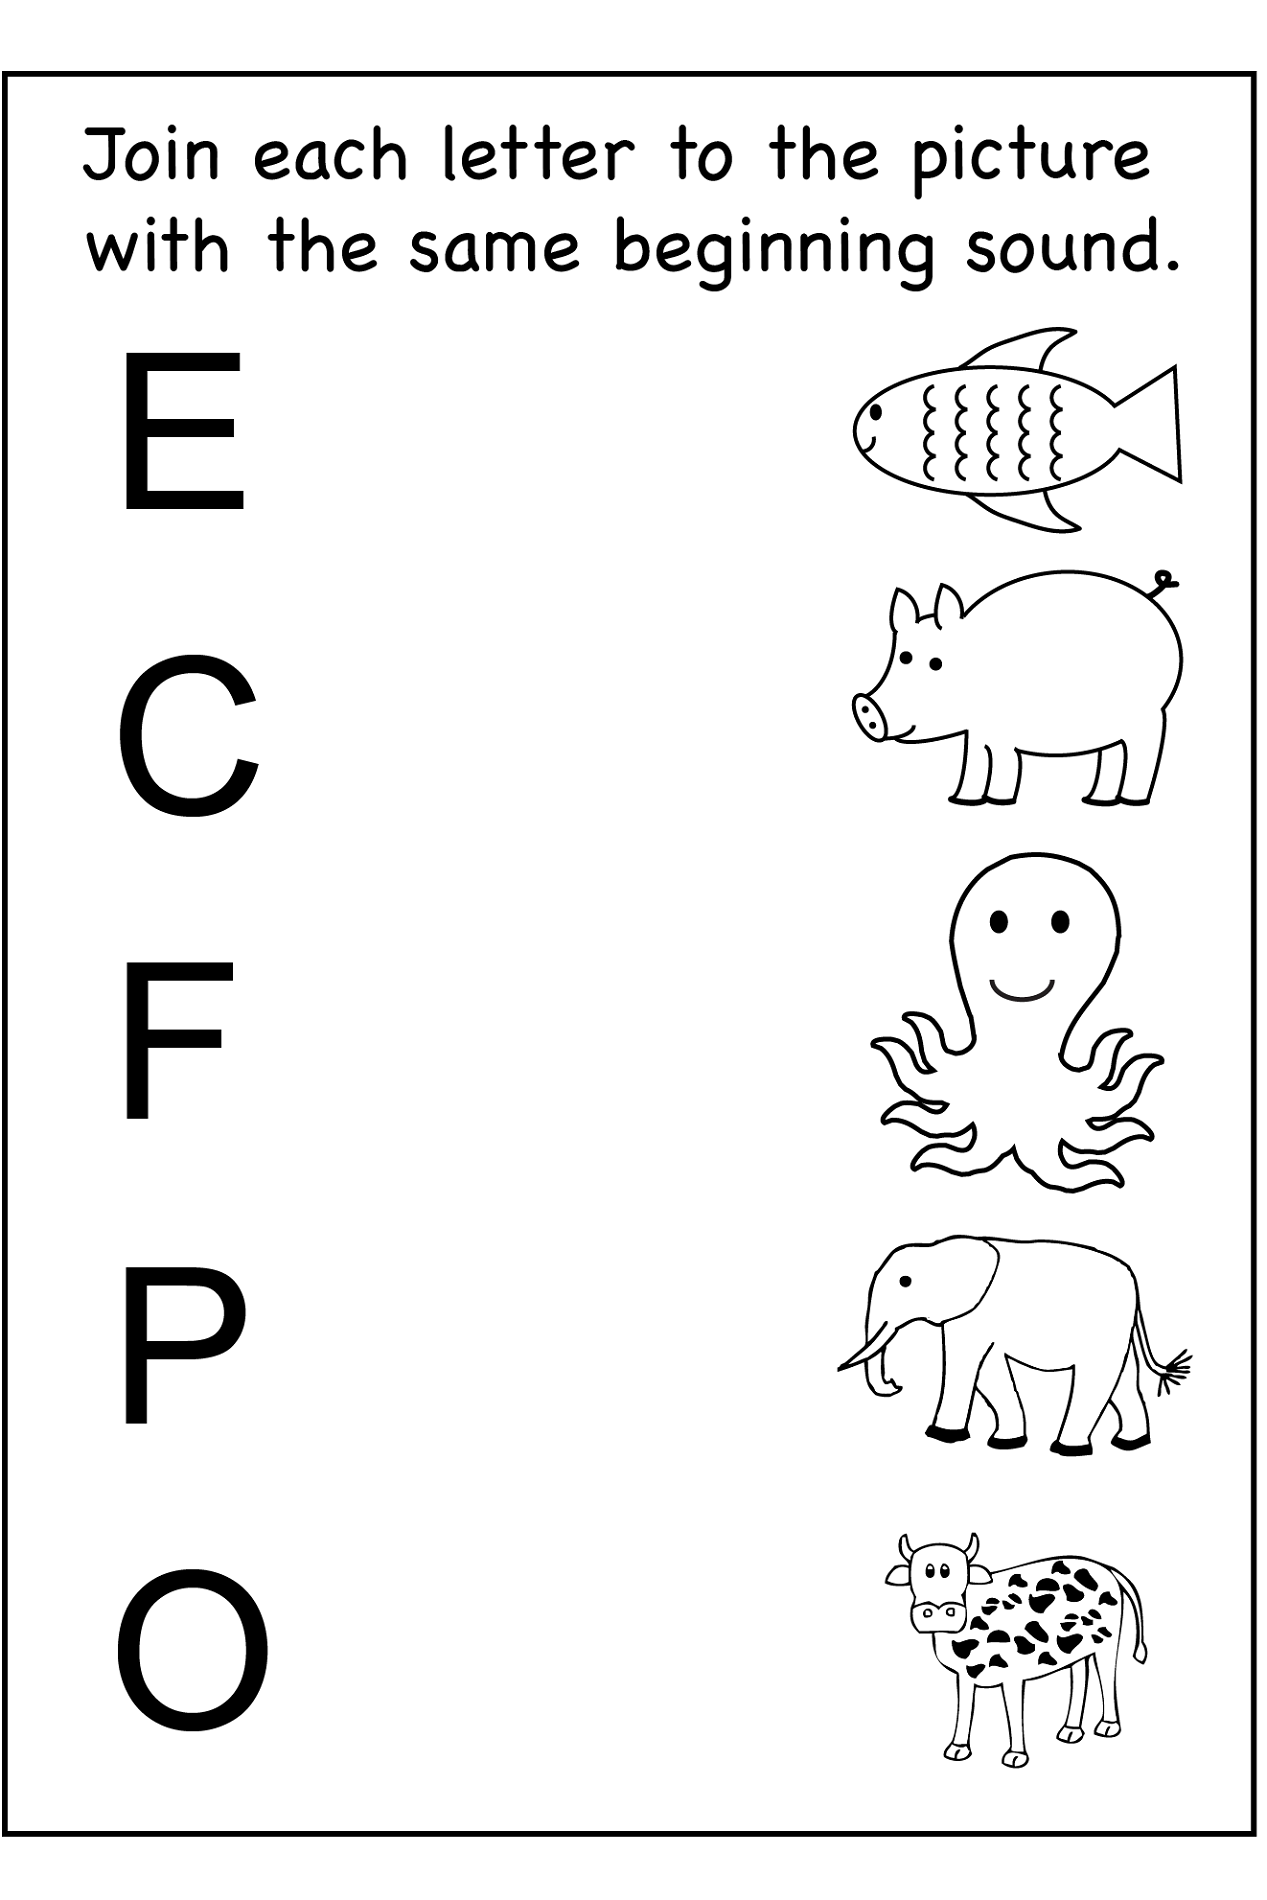 Printable Activity Sheets for Kids | Kid Stuff | Free ...